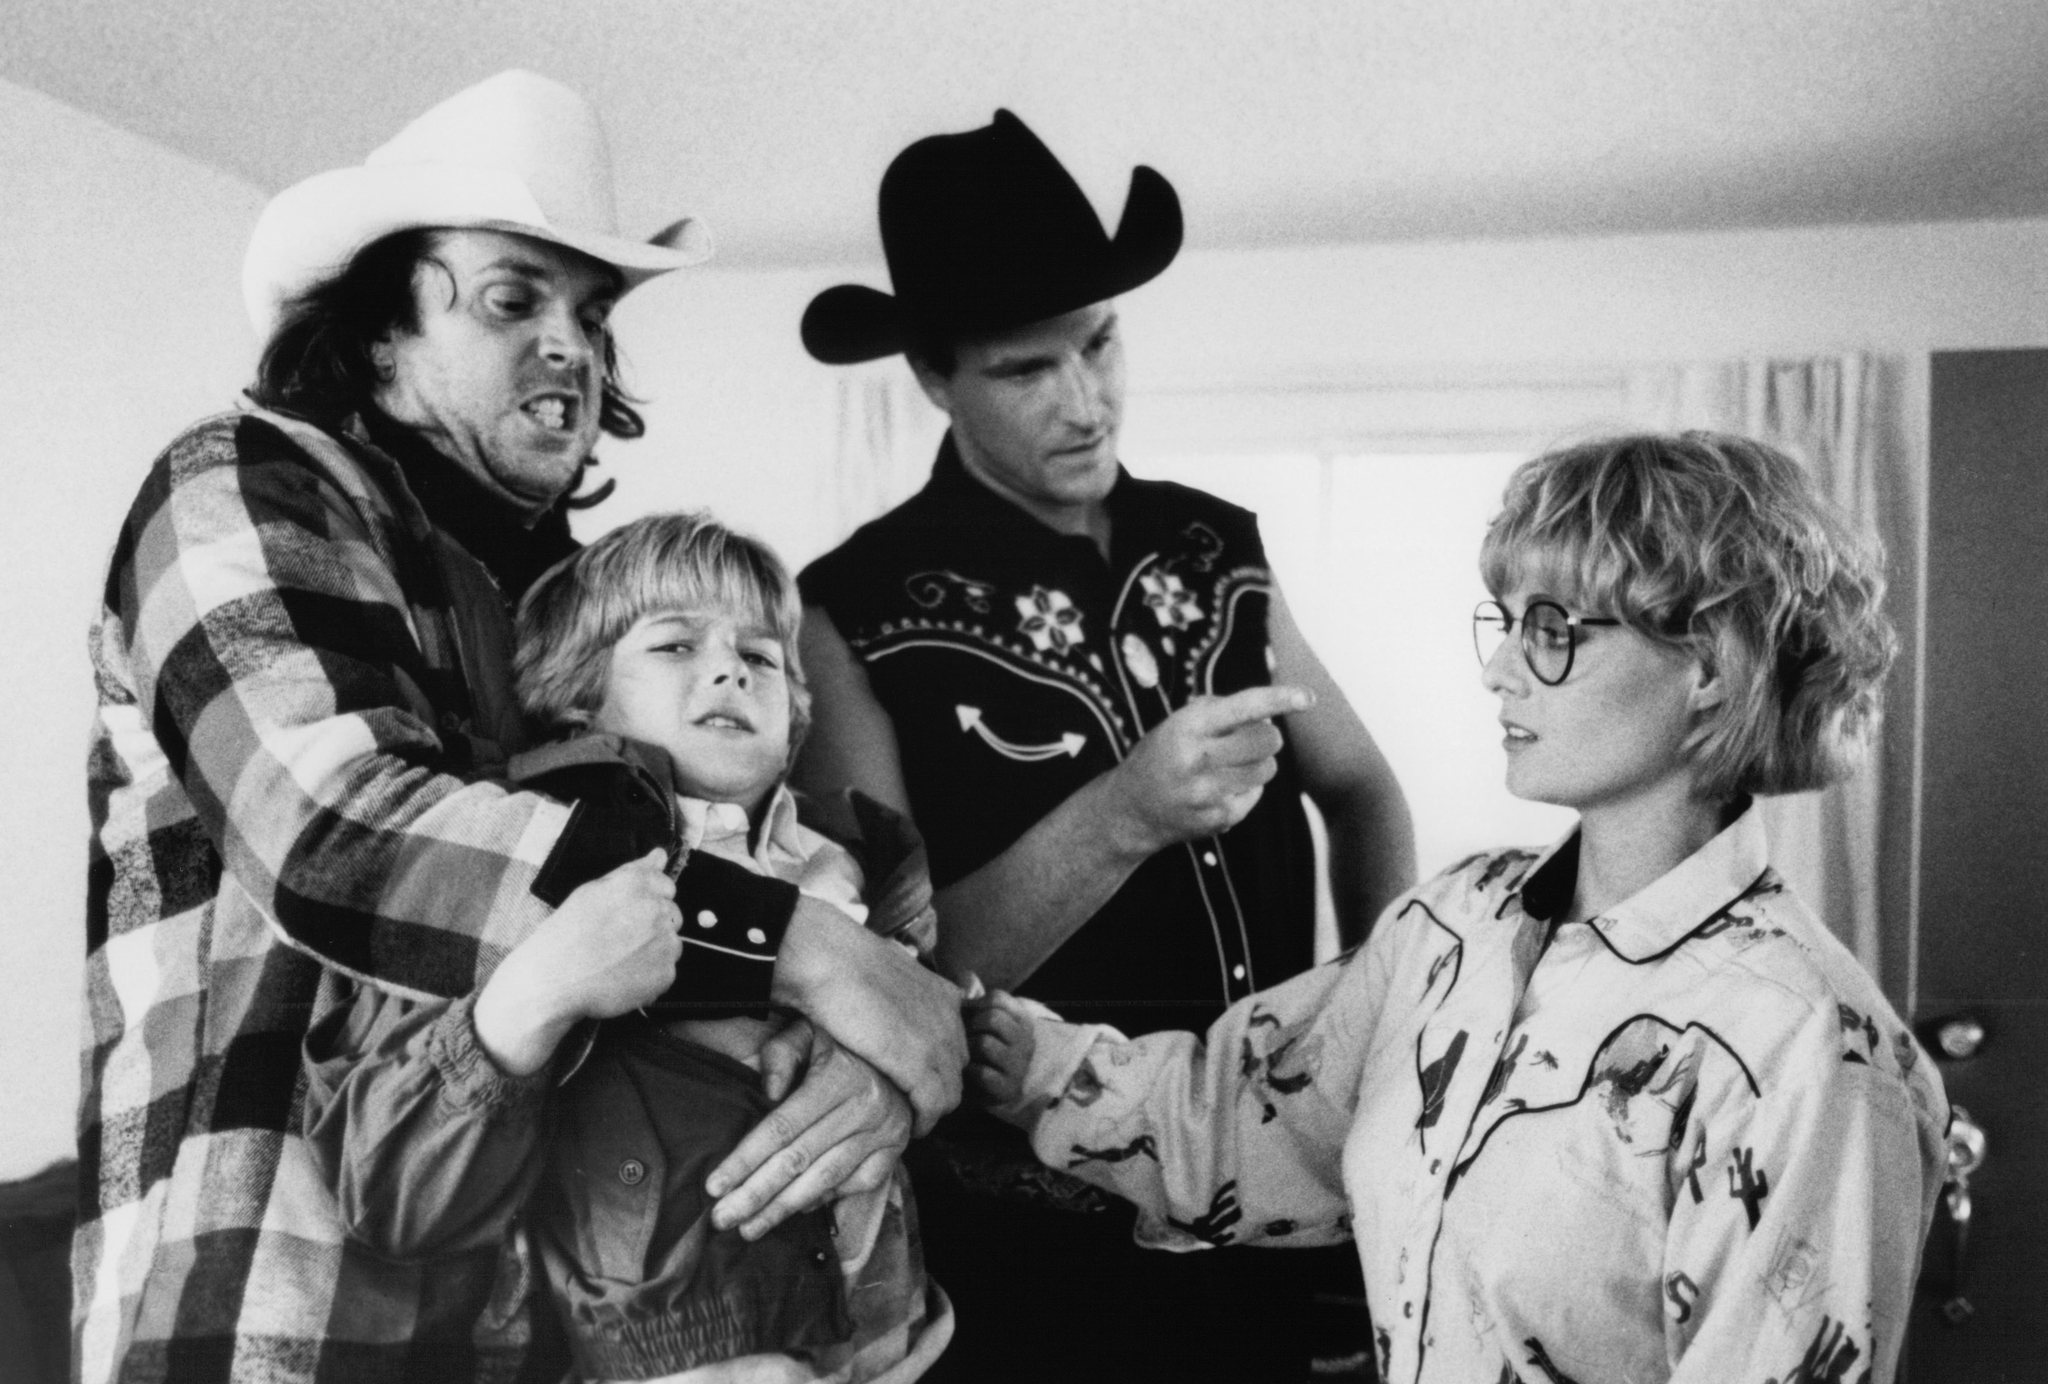 Nick Cassavetes, Lisa Blount, Brandon Call, and Rick Overton in Blind Fury (1989)